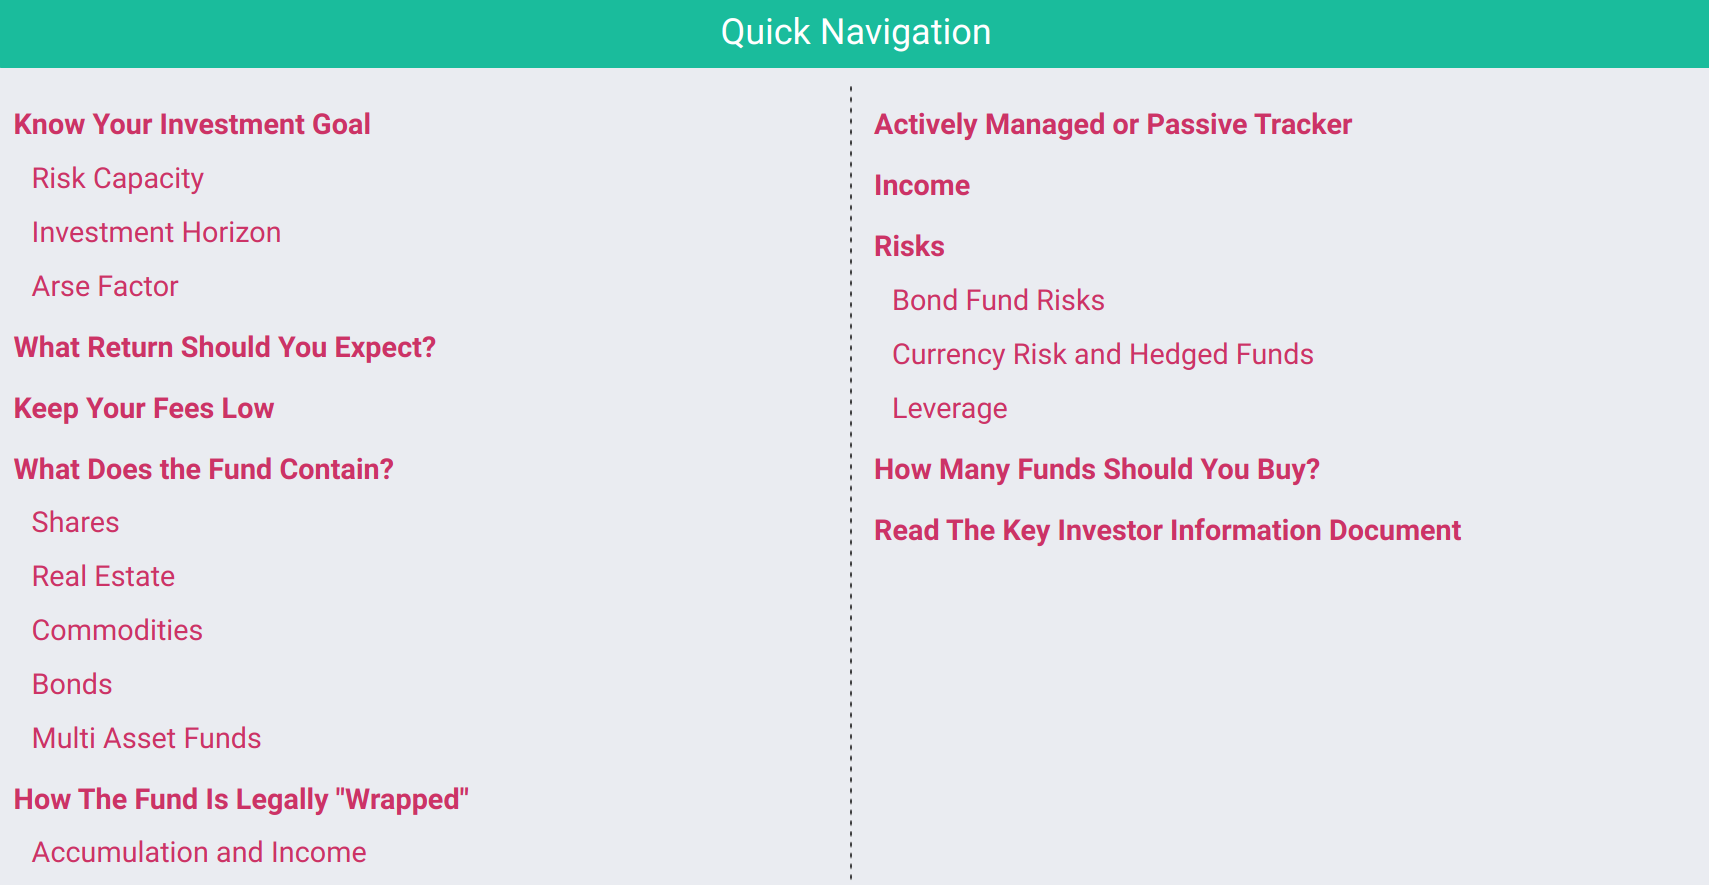 How To Choose The Best Fund Course Contents